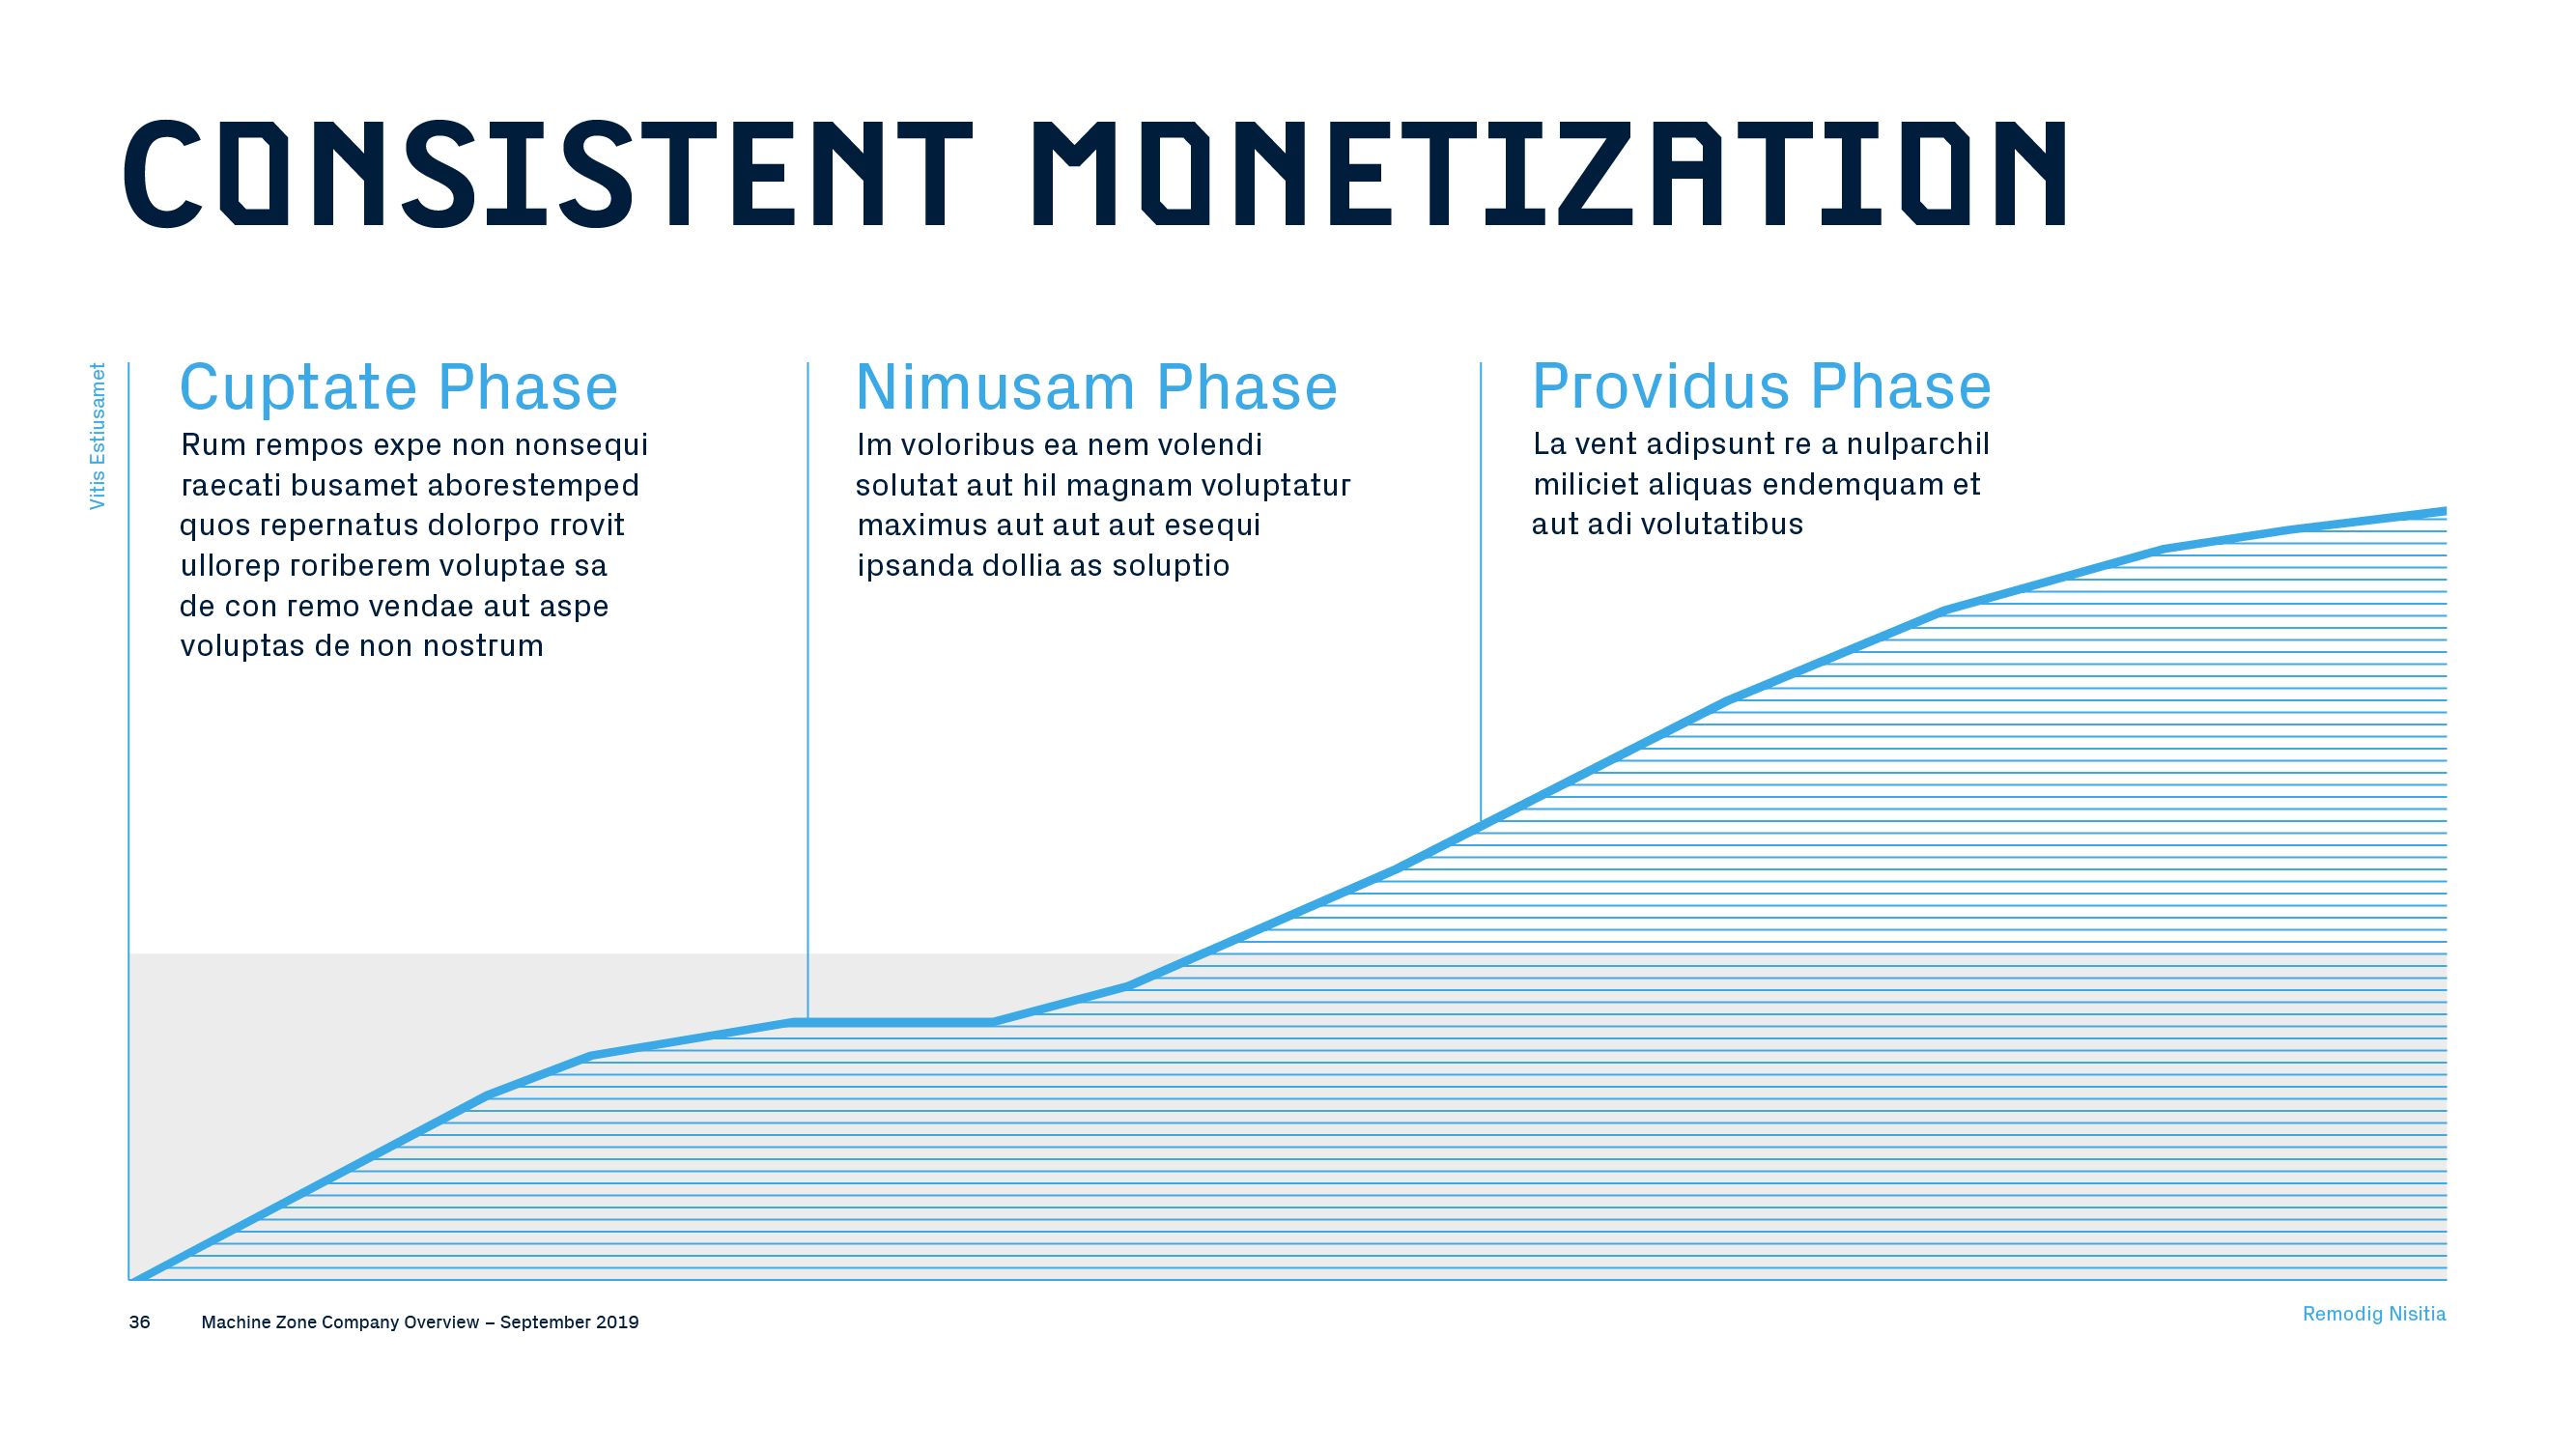 Machine Zone monetization